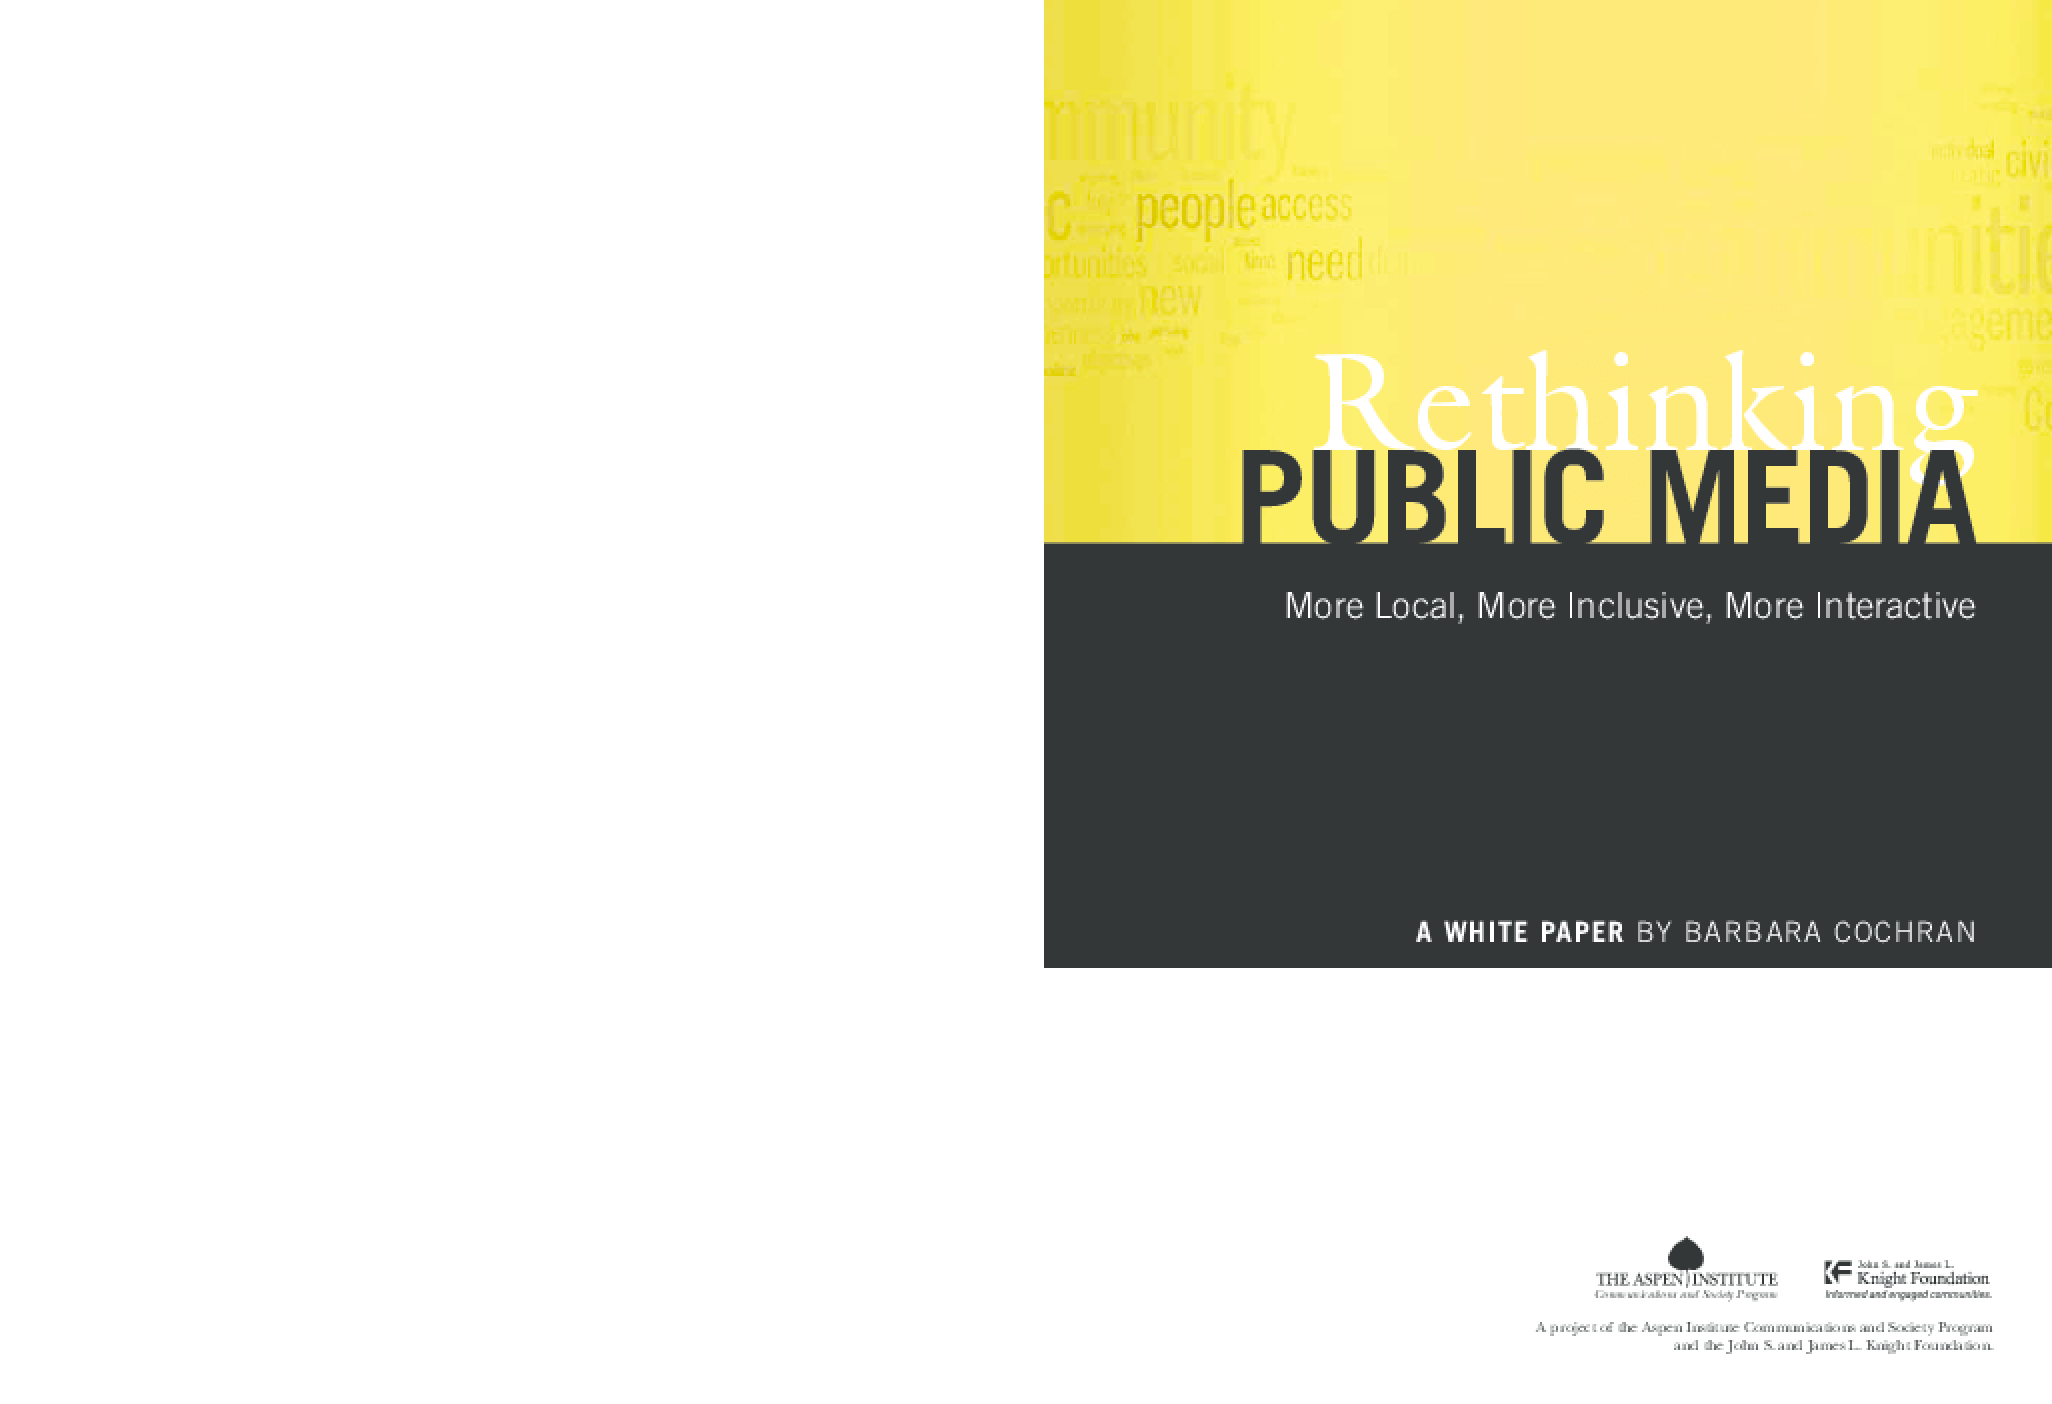 Rethinking Public Media: More Local, More Inclusive, More Interactive